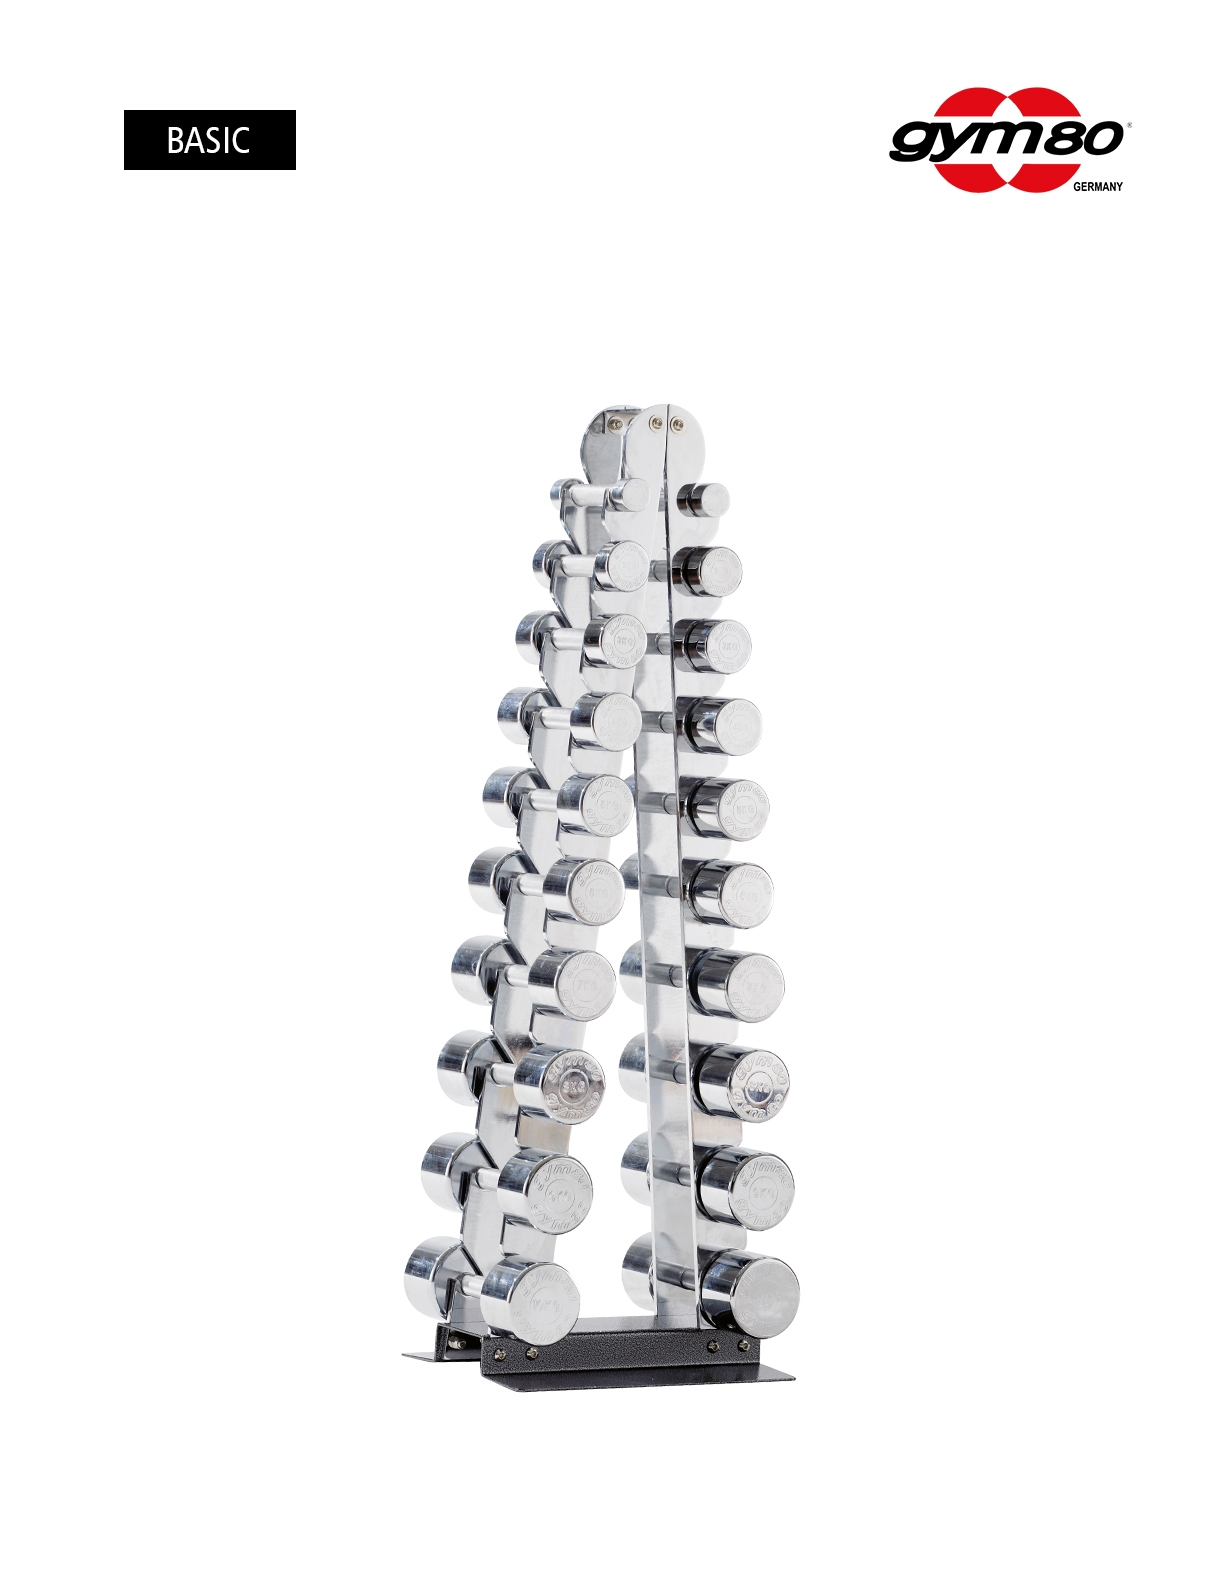 CHROME DUMBBELLS SET FROM 1-10 KG IN PAIRS, INCLINE DUMBBELL RACK